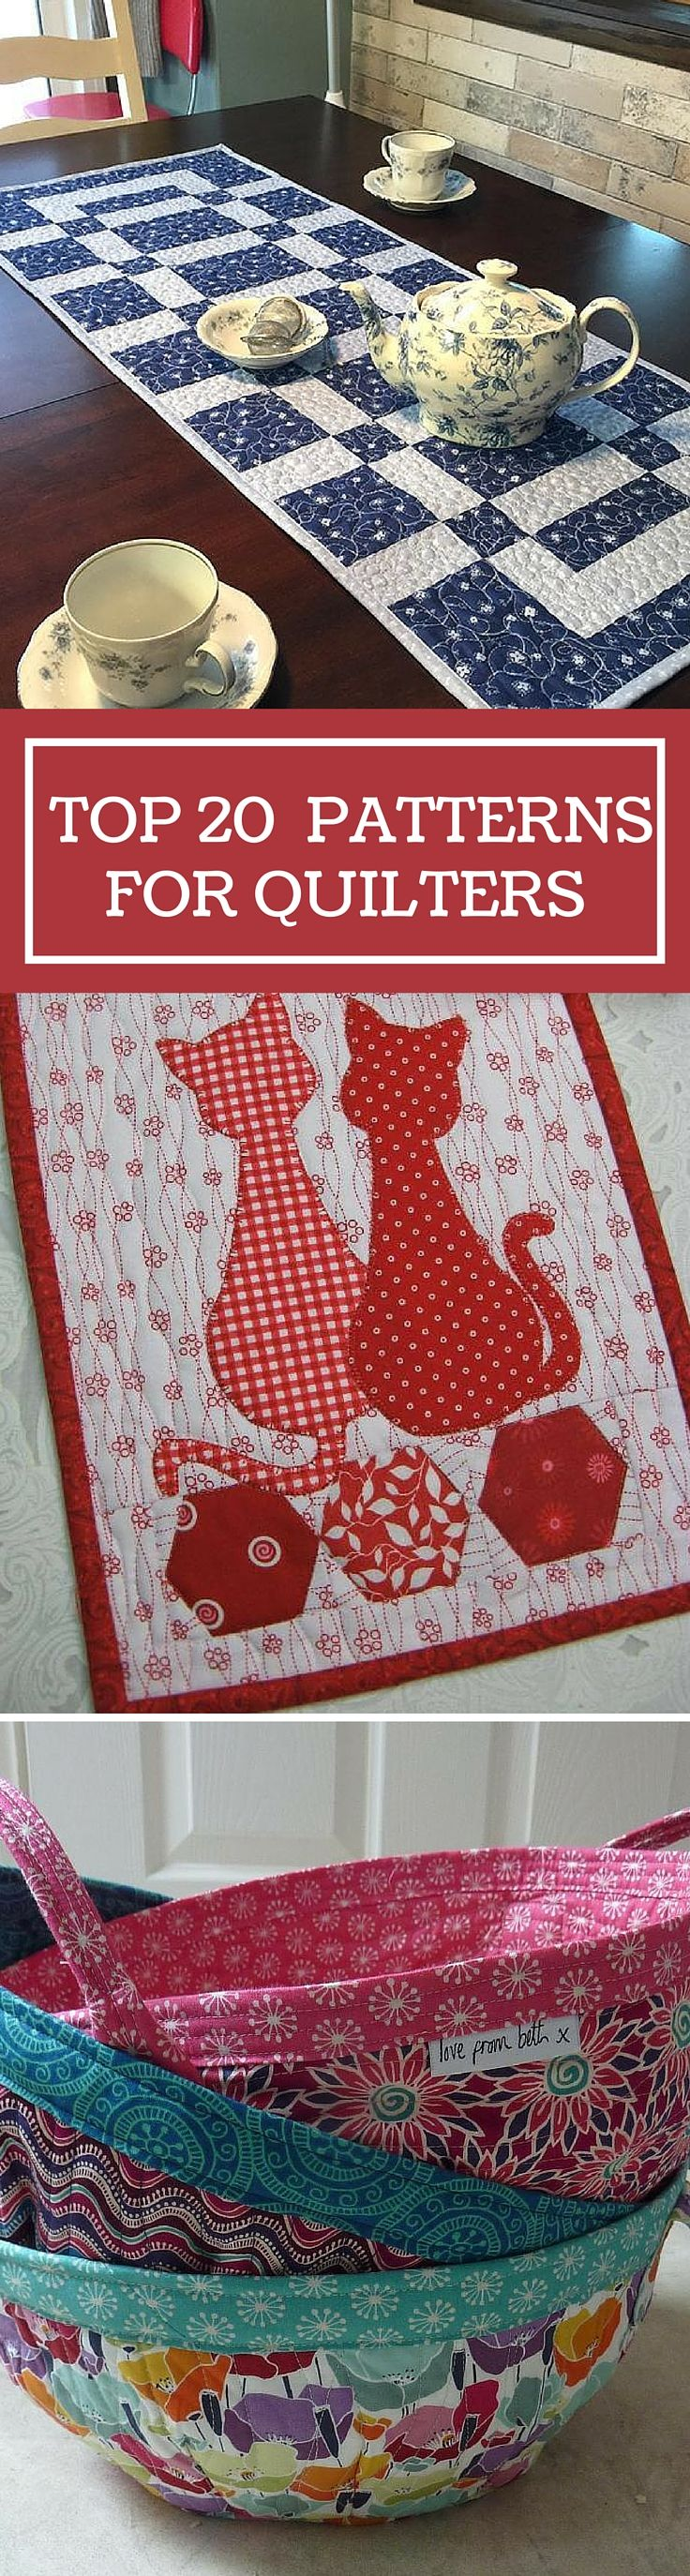 Top 20 Patterns for Quilters of All Levels